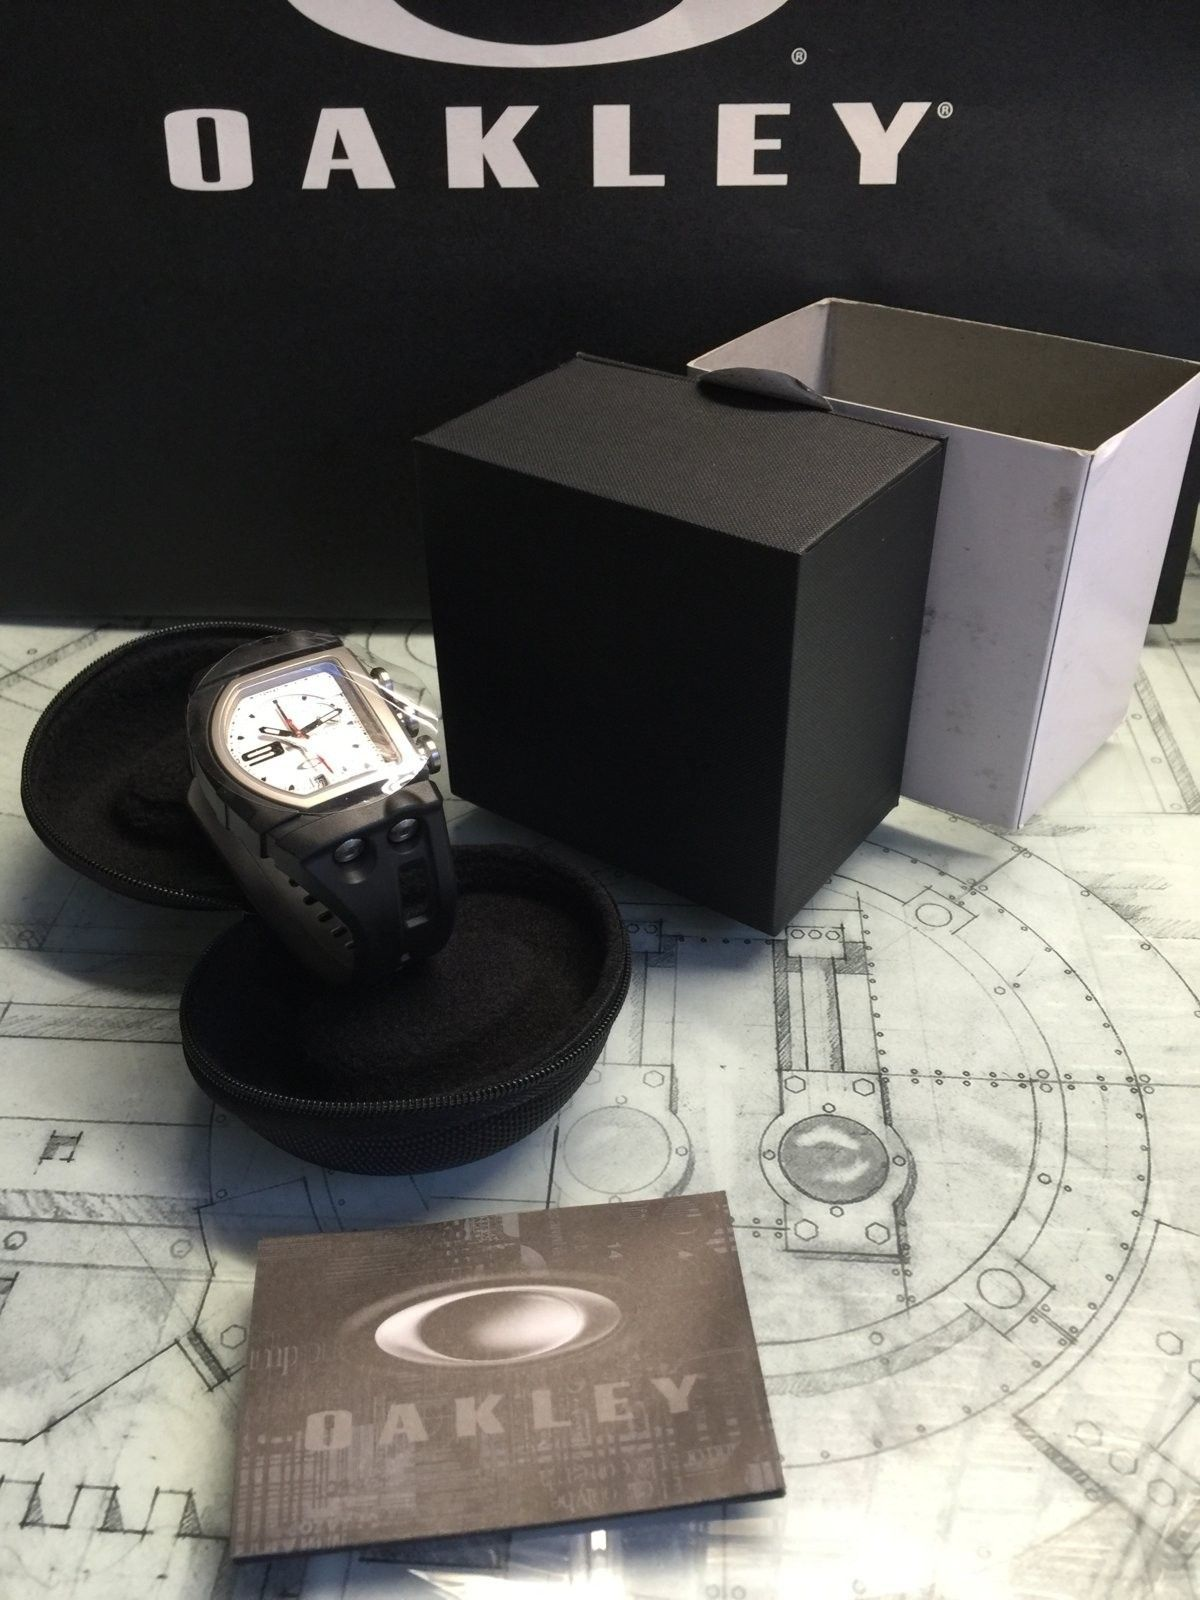 BNIB White dial Fuse Box watch $225 shipped - IMG_2423.JPG